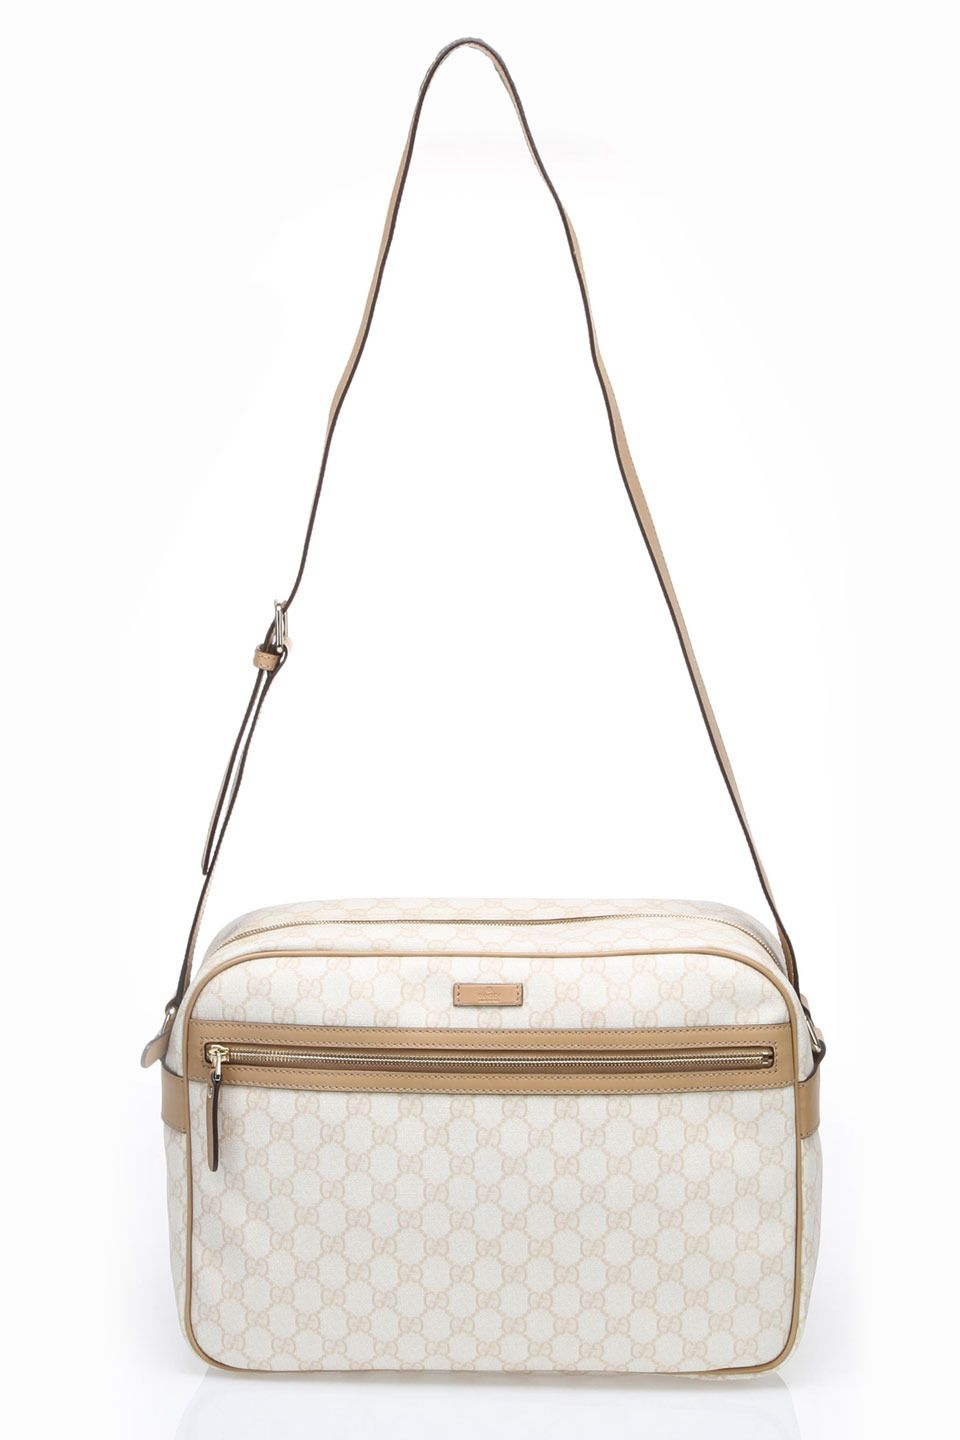 Gucci Gg Plus Messenger Bag In Cream My Style Bags